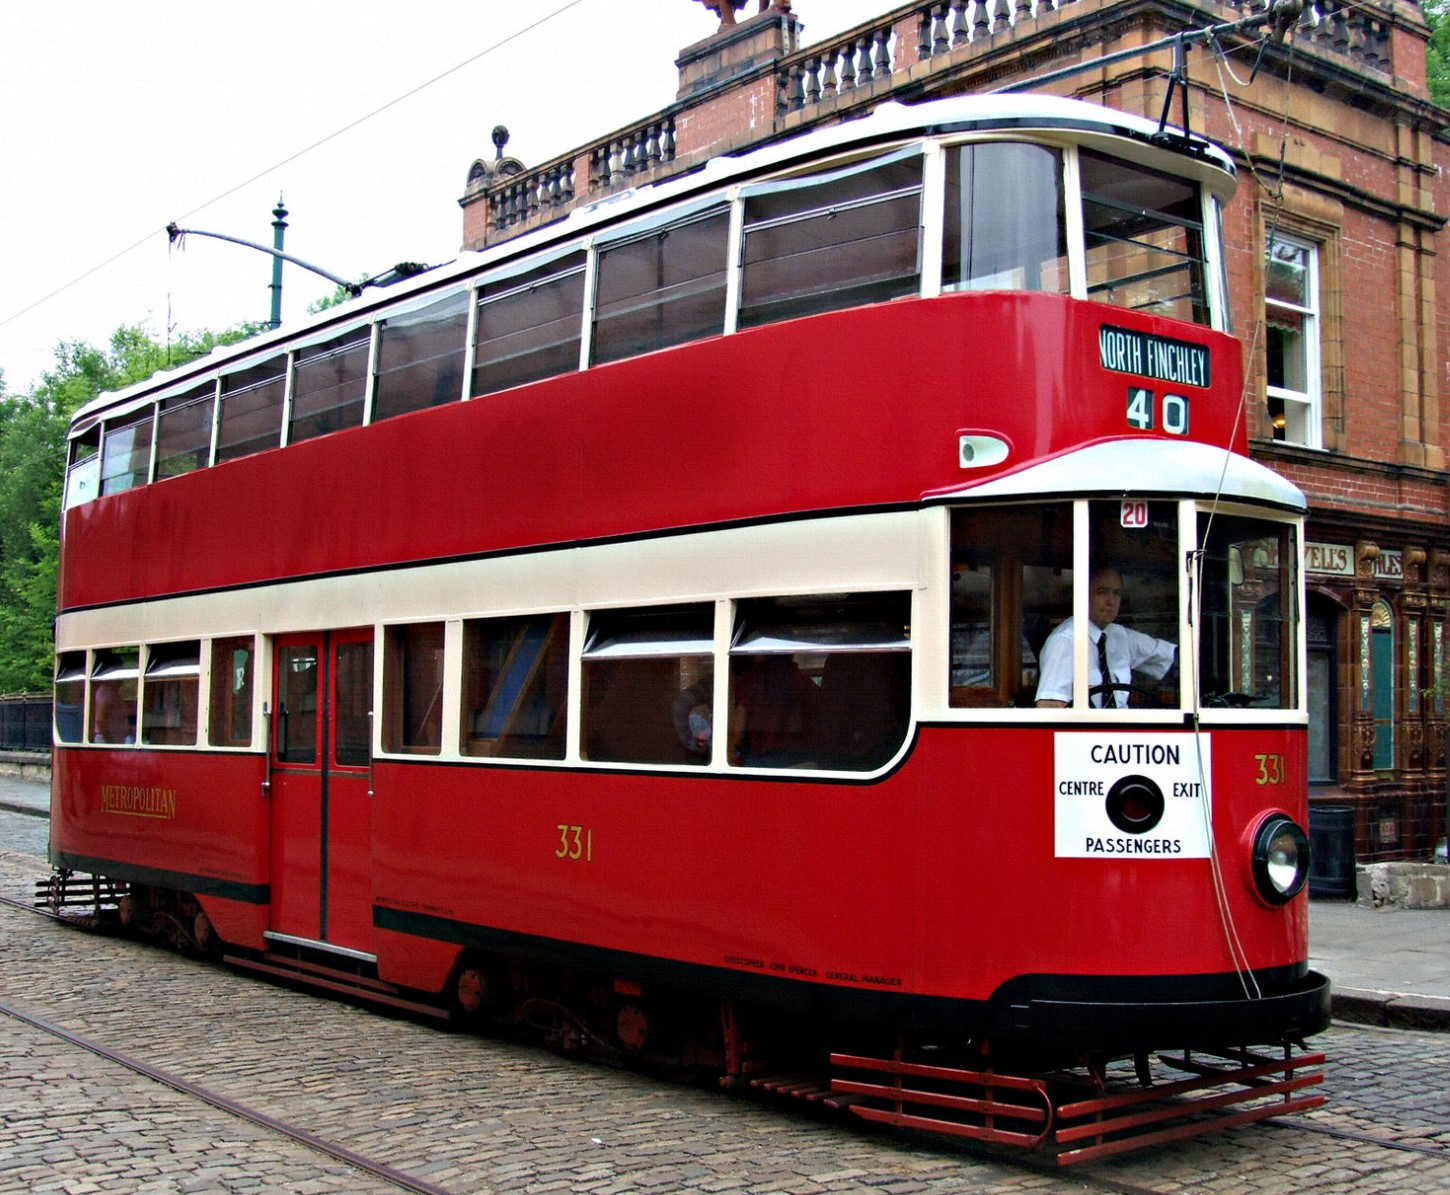 331 at Crich Tramway Museum in July 2009. ©Voogd075